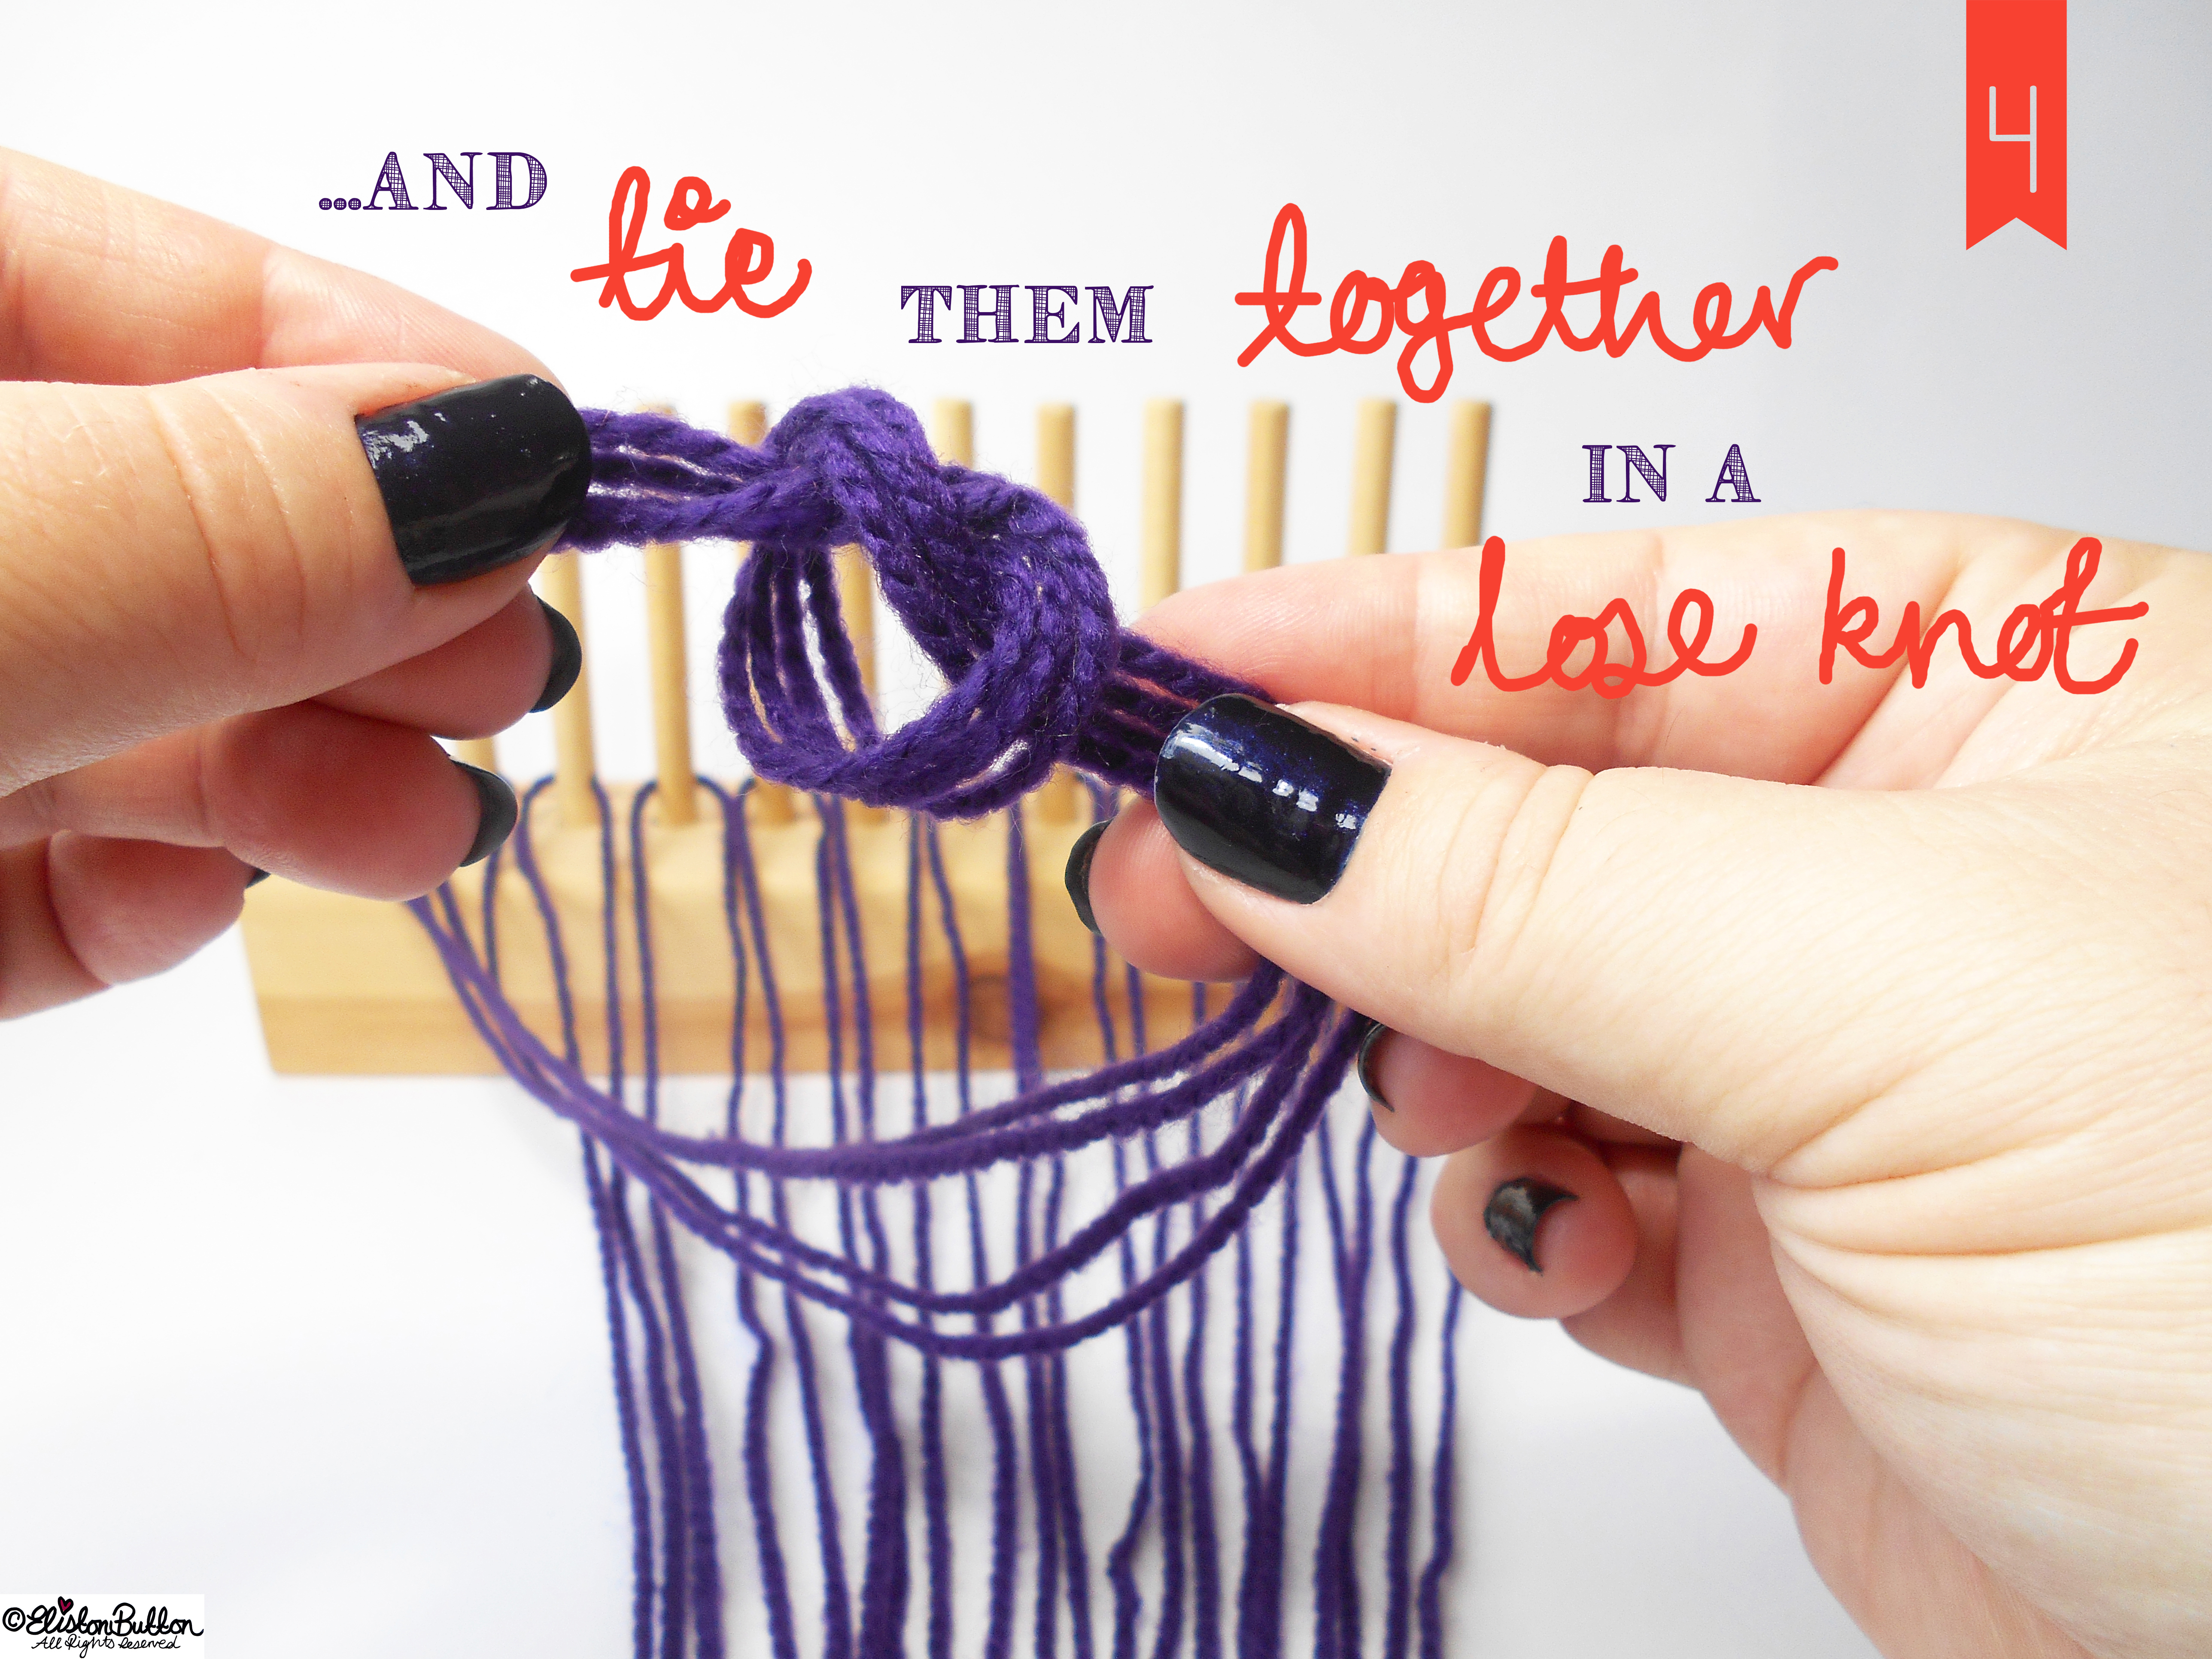 Knot the Wool Ends. - Tutorial Tuesday - Peg Loom Weaving - Part One at www.elistonbutton.com - Eliston Button - That Crafty Kid – Art, Design, Craft & Adventure.